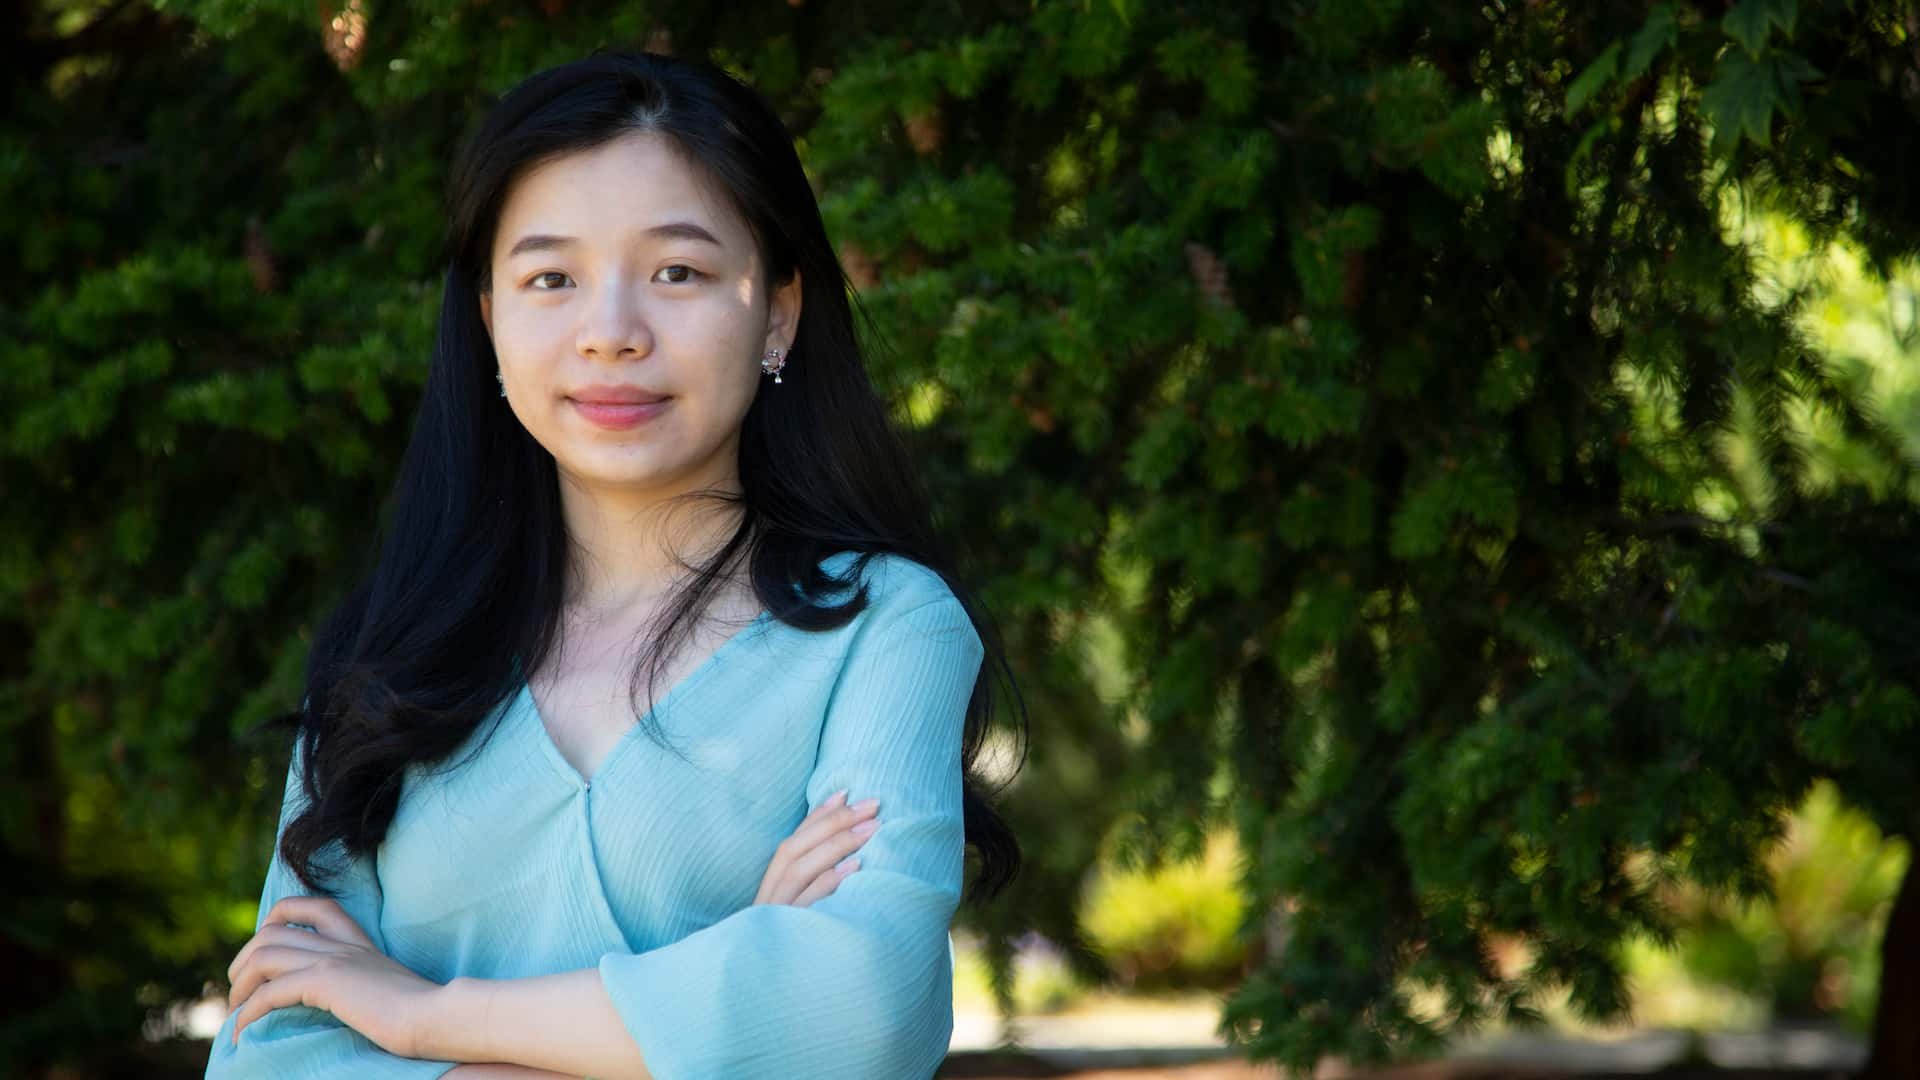 Interview with Urban Forestry student, Alina Zeng